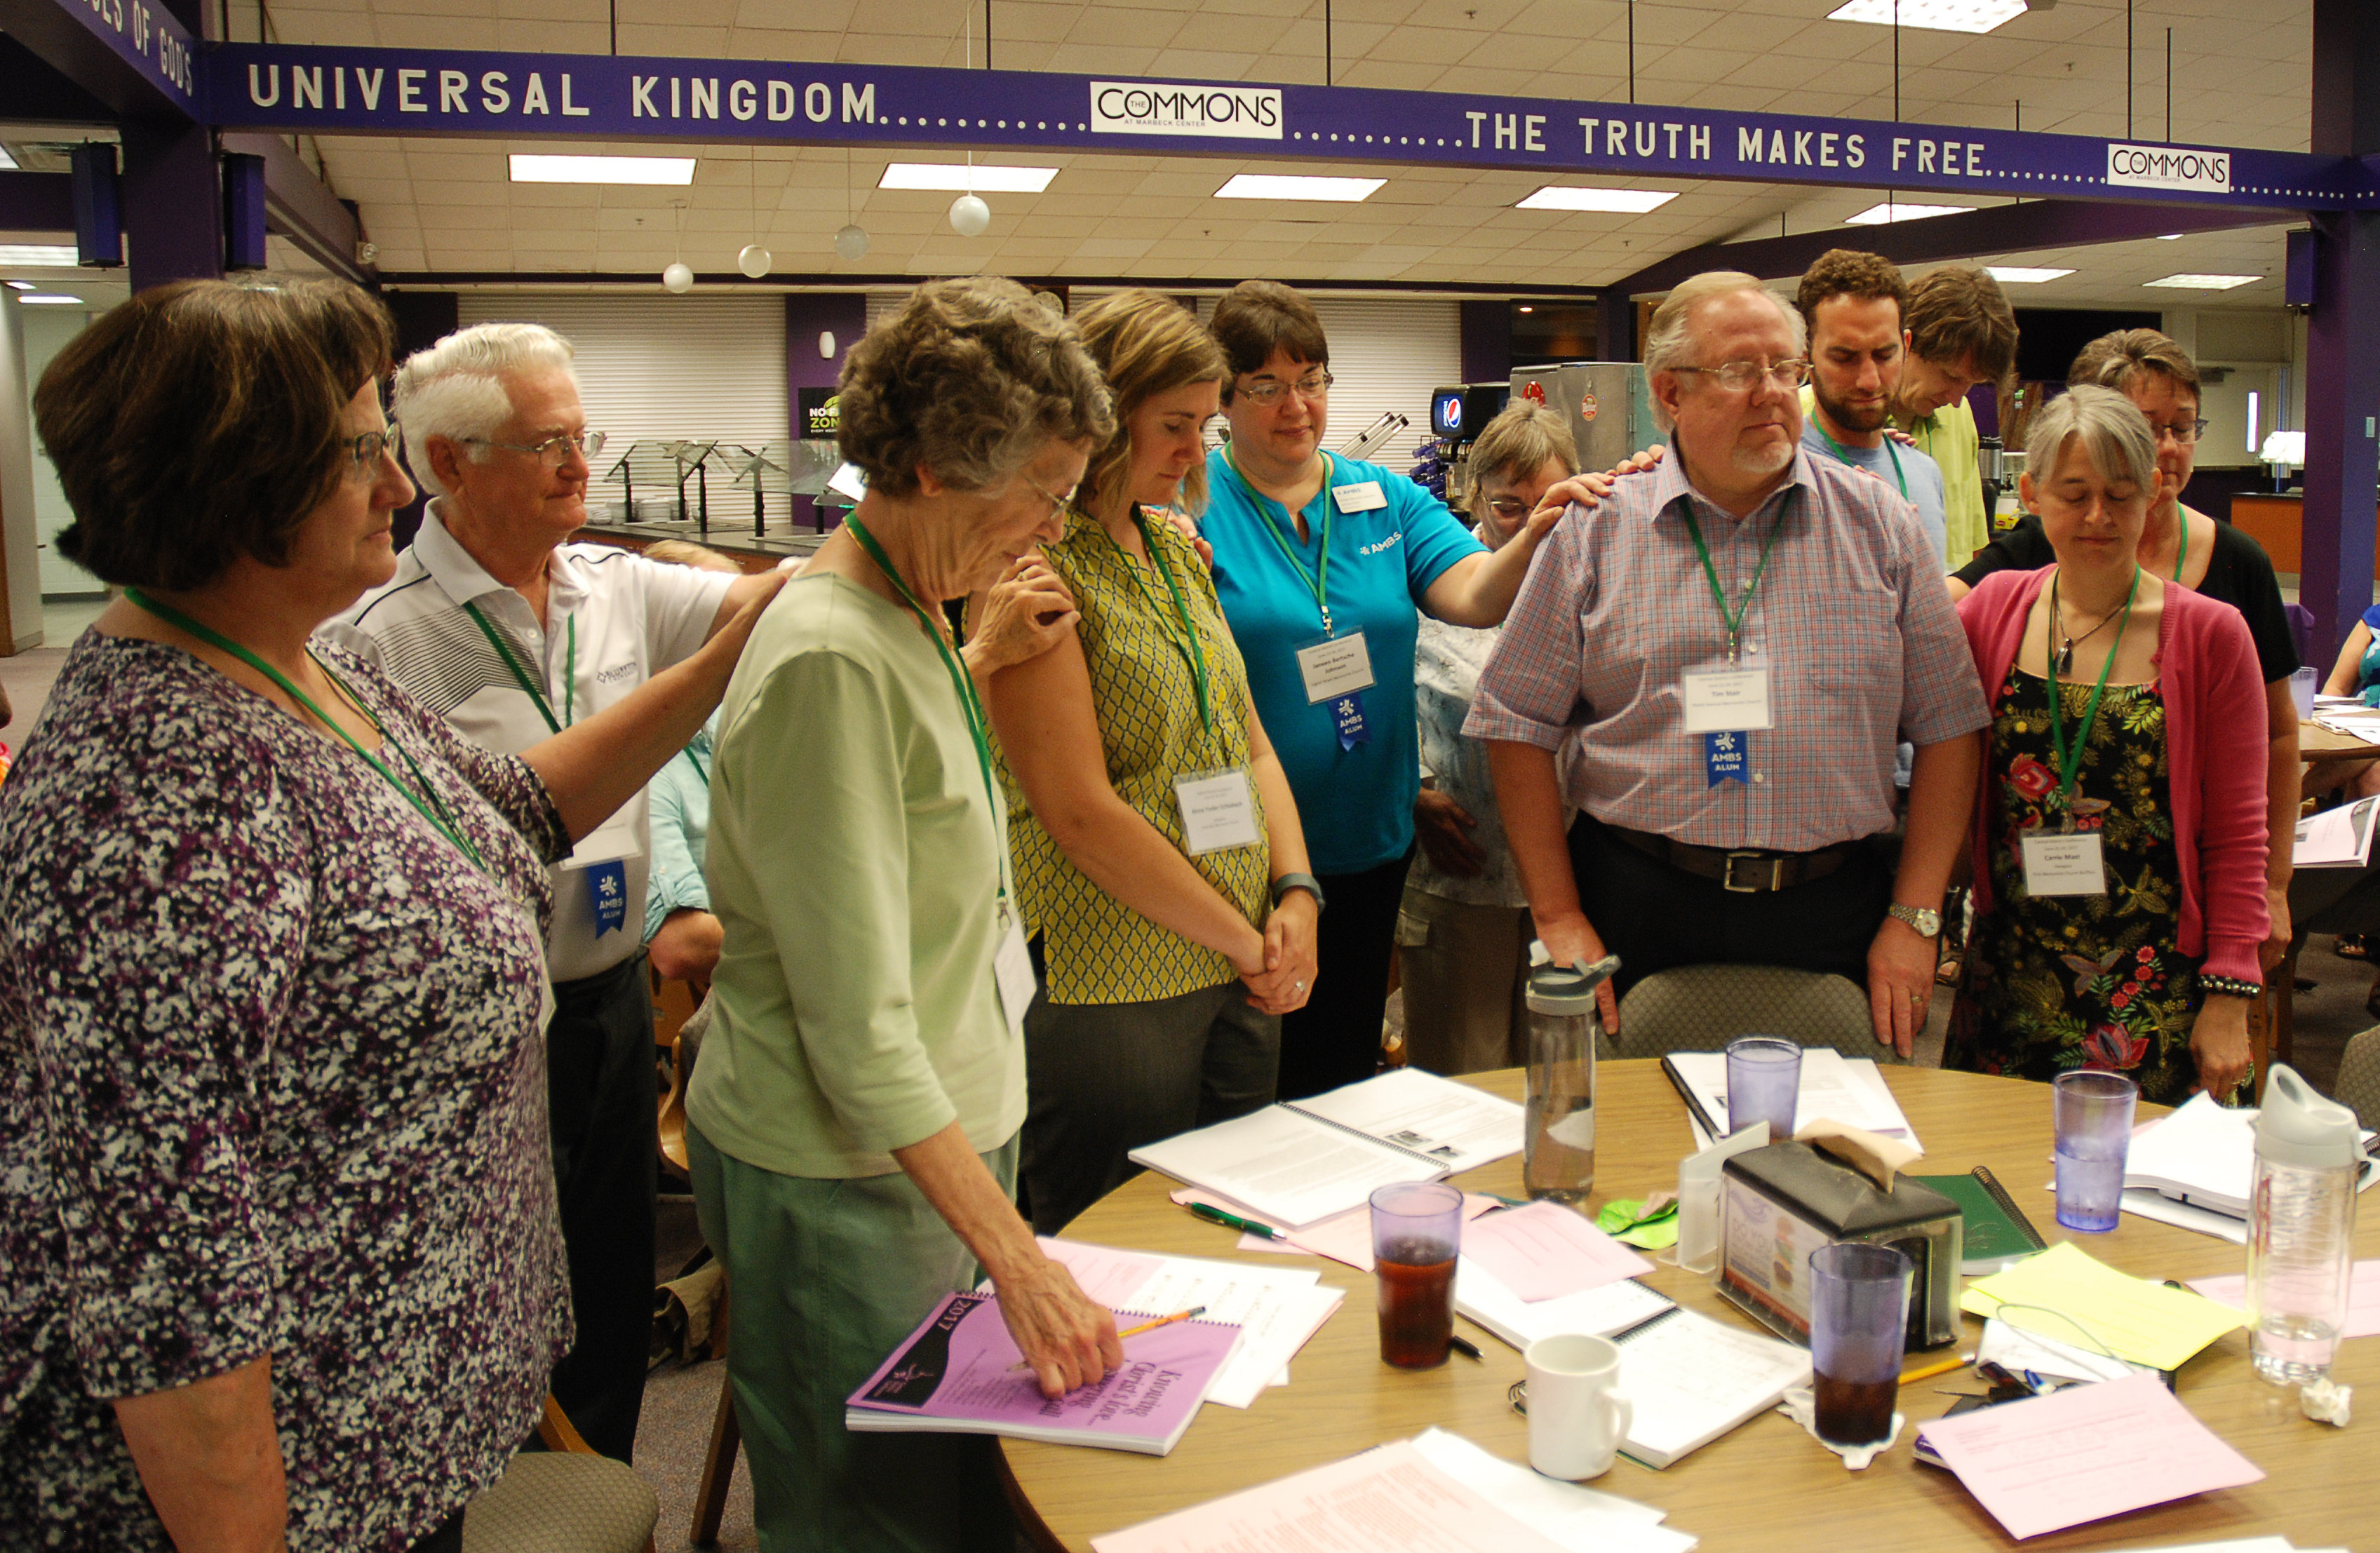 Annual meeting participants at Bluffton University, Bluffton, Ohio, surround new leaders in a commissioning prayer during the Friday morning delegate session, June 23, 2017. This group is blessing Anna Yoder Schlabach, president-elect; and Tim Stair, new member of the Missional Church Committee. (Left to right): Omie Baumgartner, Jim Mohr, Mary Beth Huser, Anna Yoder Schlabach, Janeen Bertsche Johnson, Rosalie Grove, Tim Stair, Jake Hess, Trevor Bechtel, Carrie Mast and Brenda North Martin. Photo by Mary E. Klassen